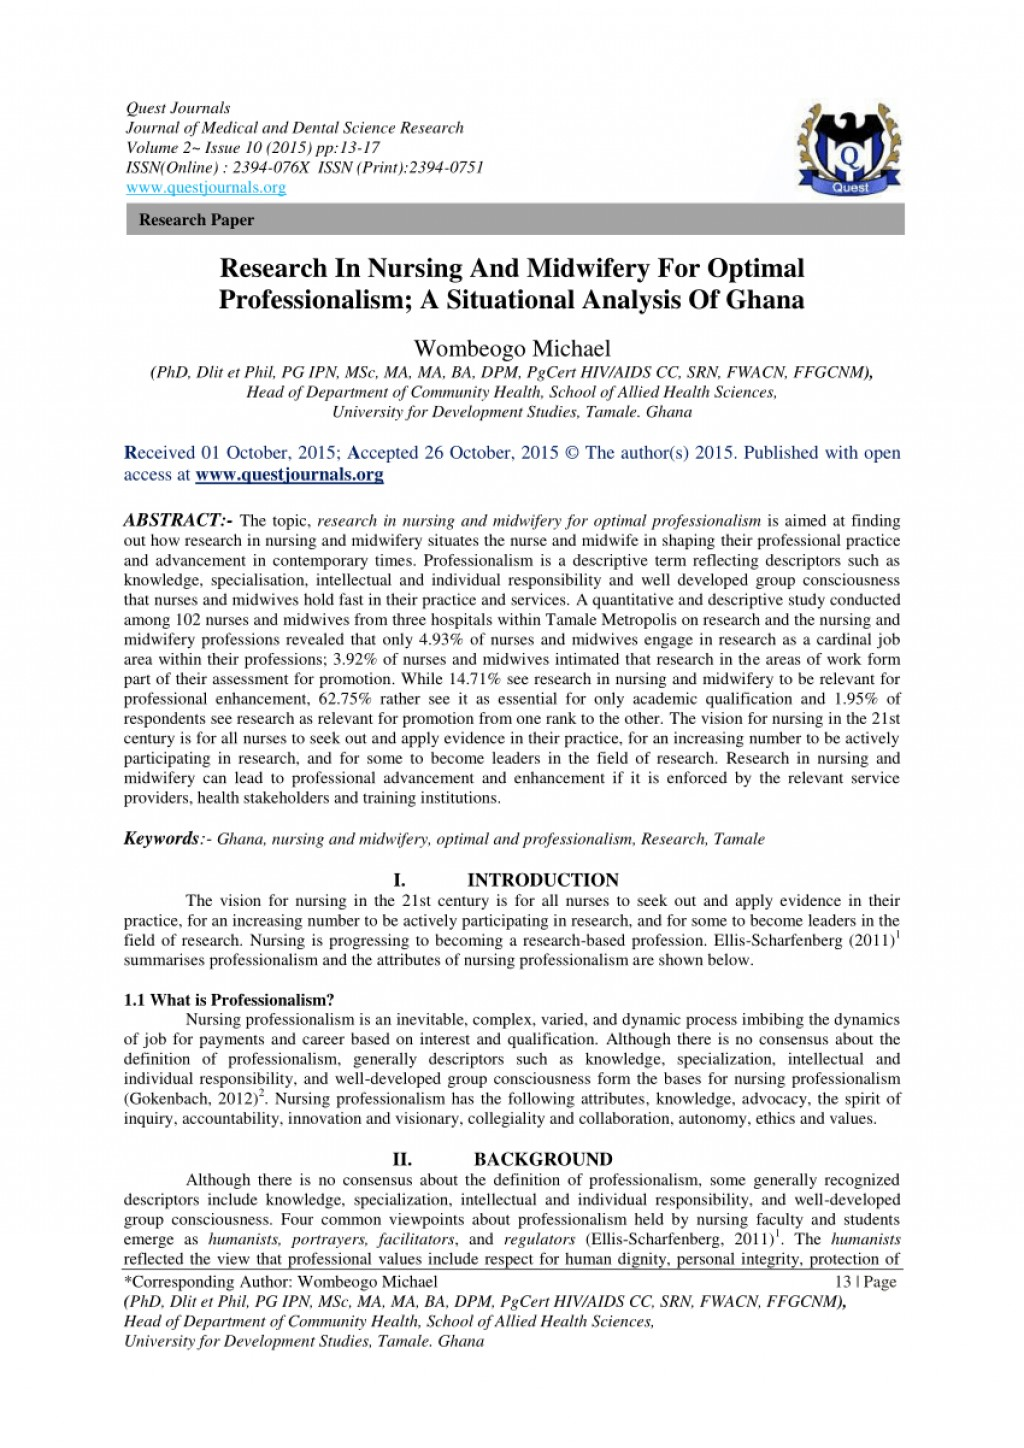 005 Research Paper About Nursing Unforgettable Topics On Home Abuse And Neglect Shortage Large